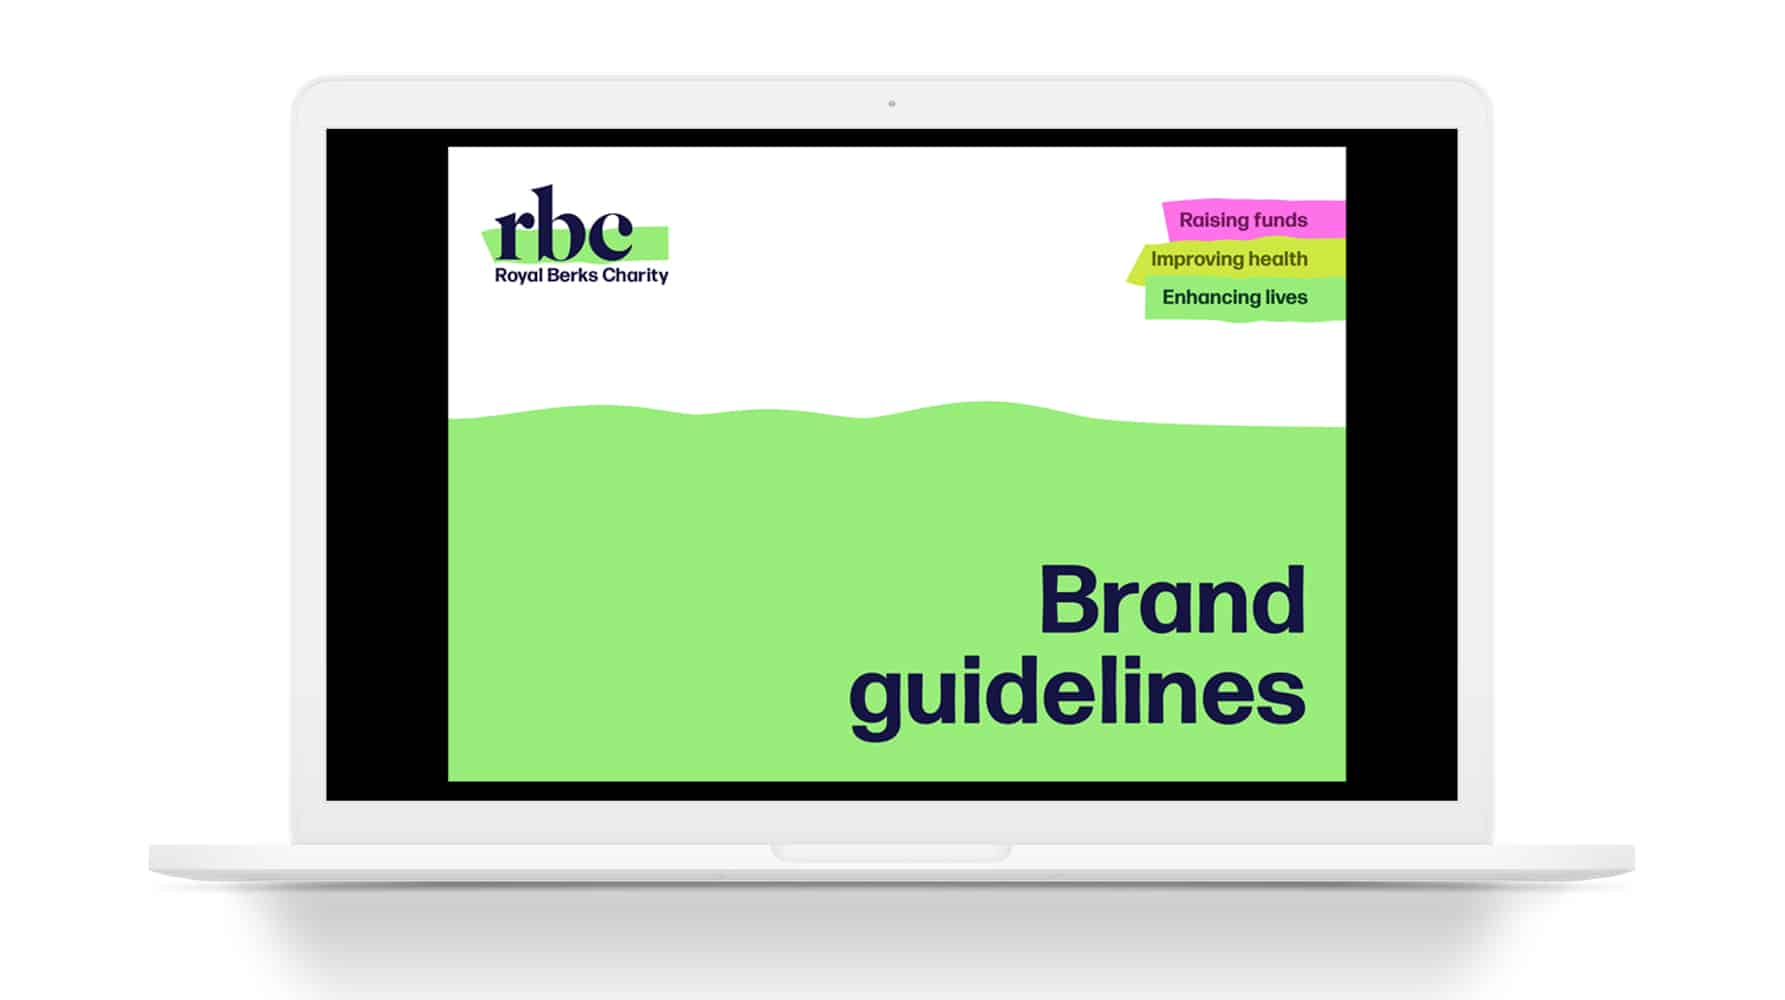 Royal Berks Charity brand guidelines cover